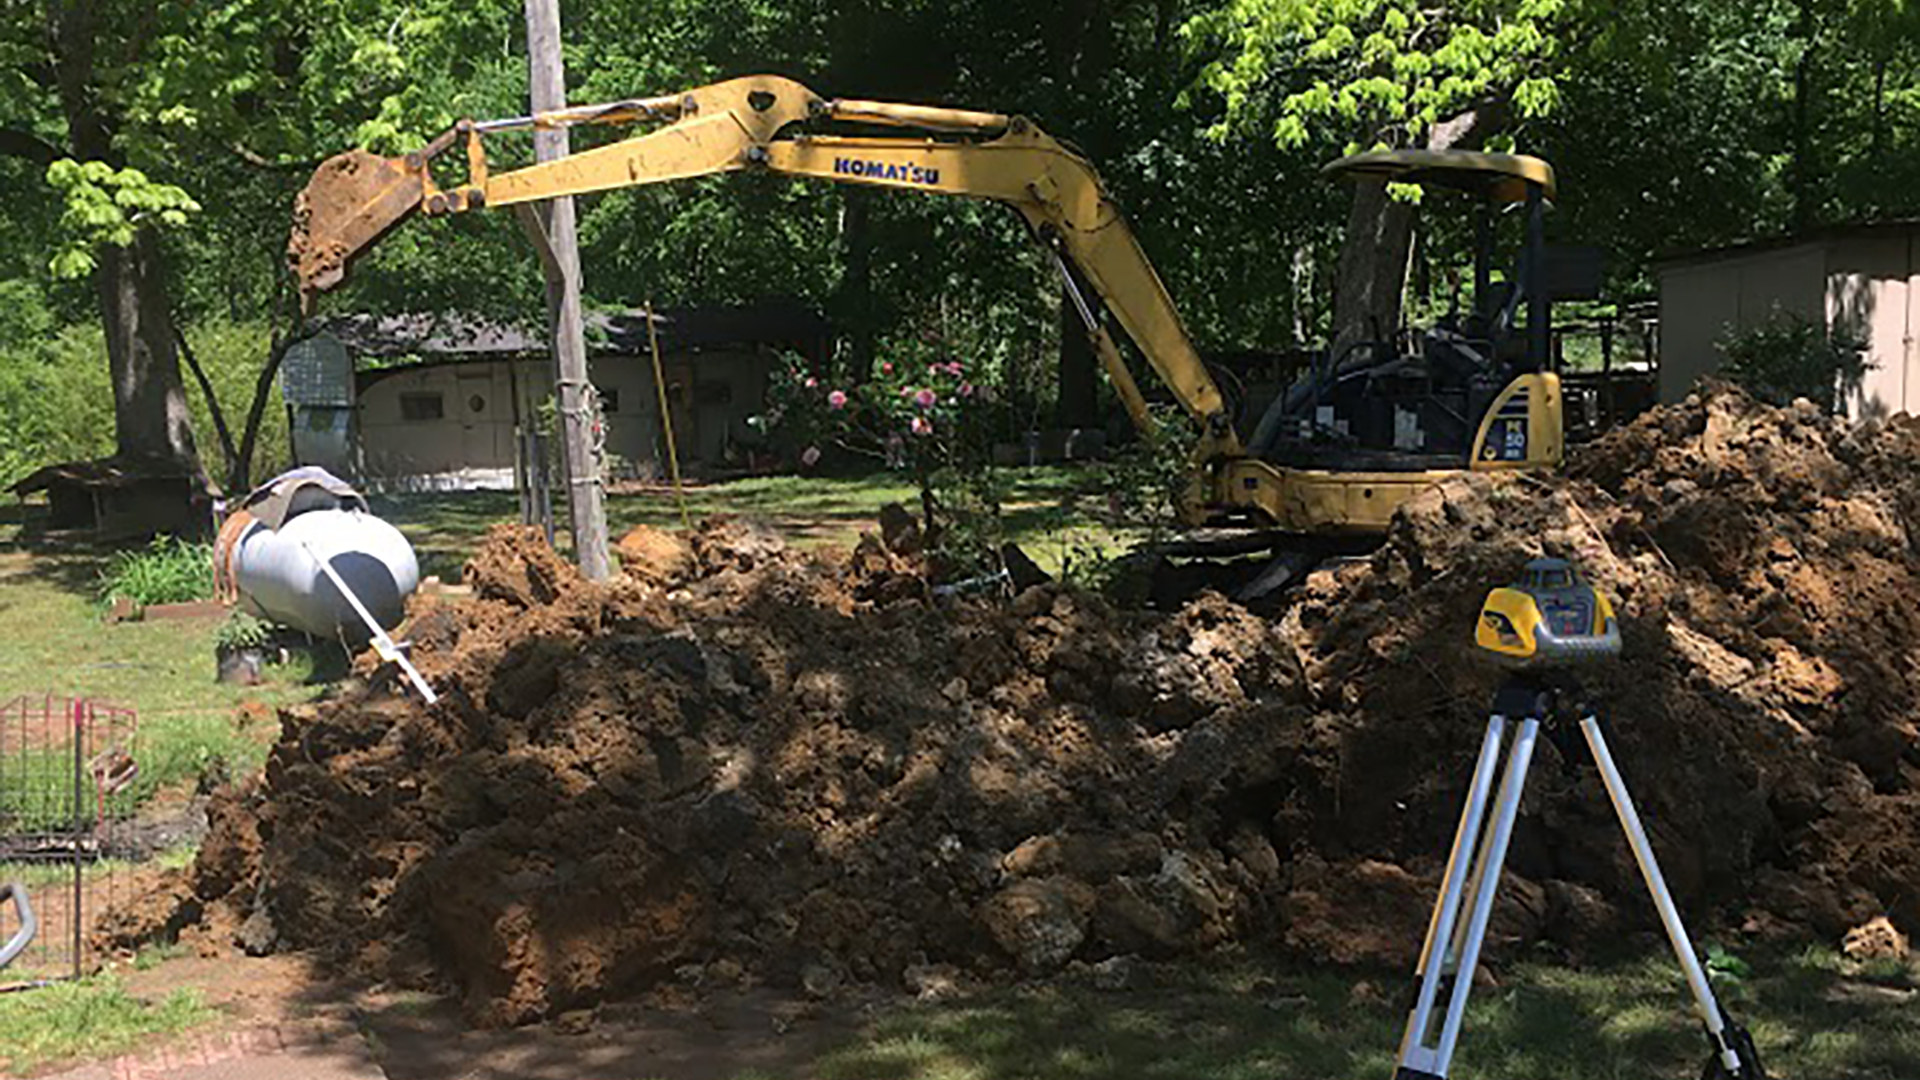 Savannah Septic Tank Pumping, Septic Company and Septic Tank Installation